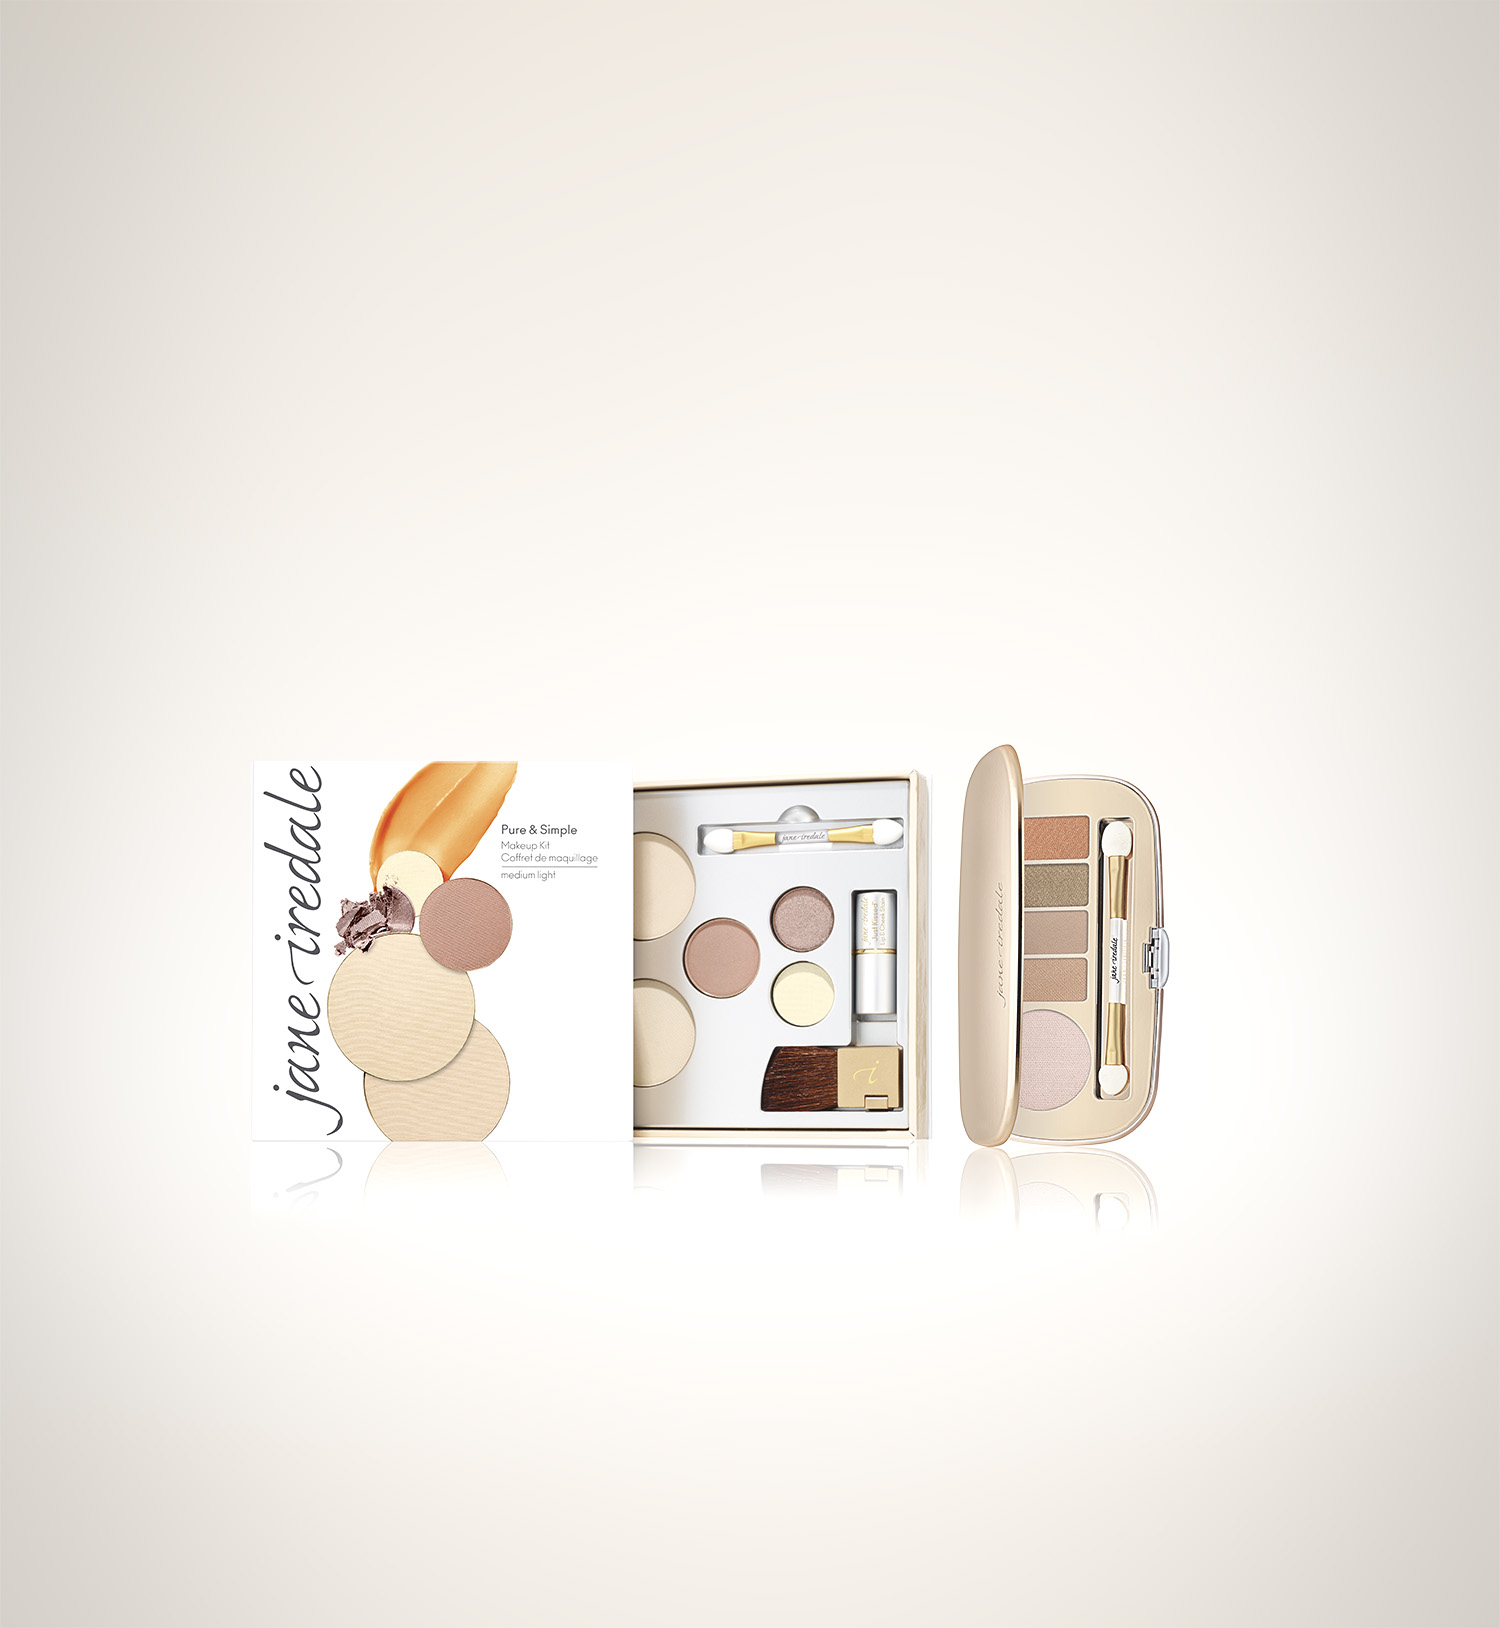 jane iredale Make-up Kits